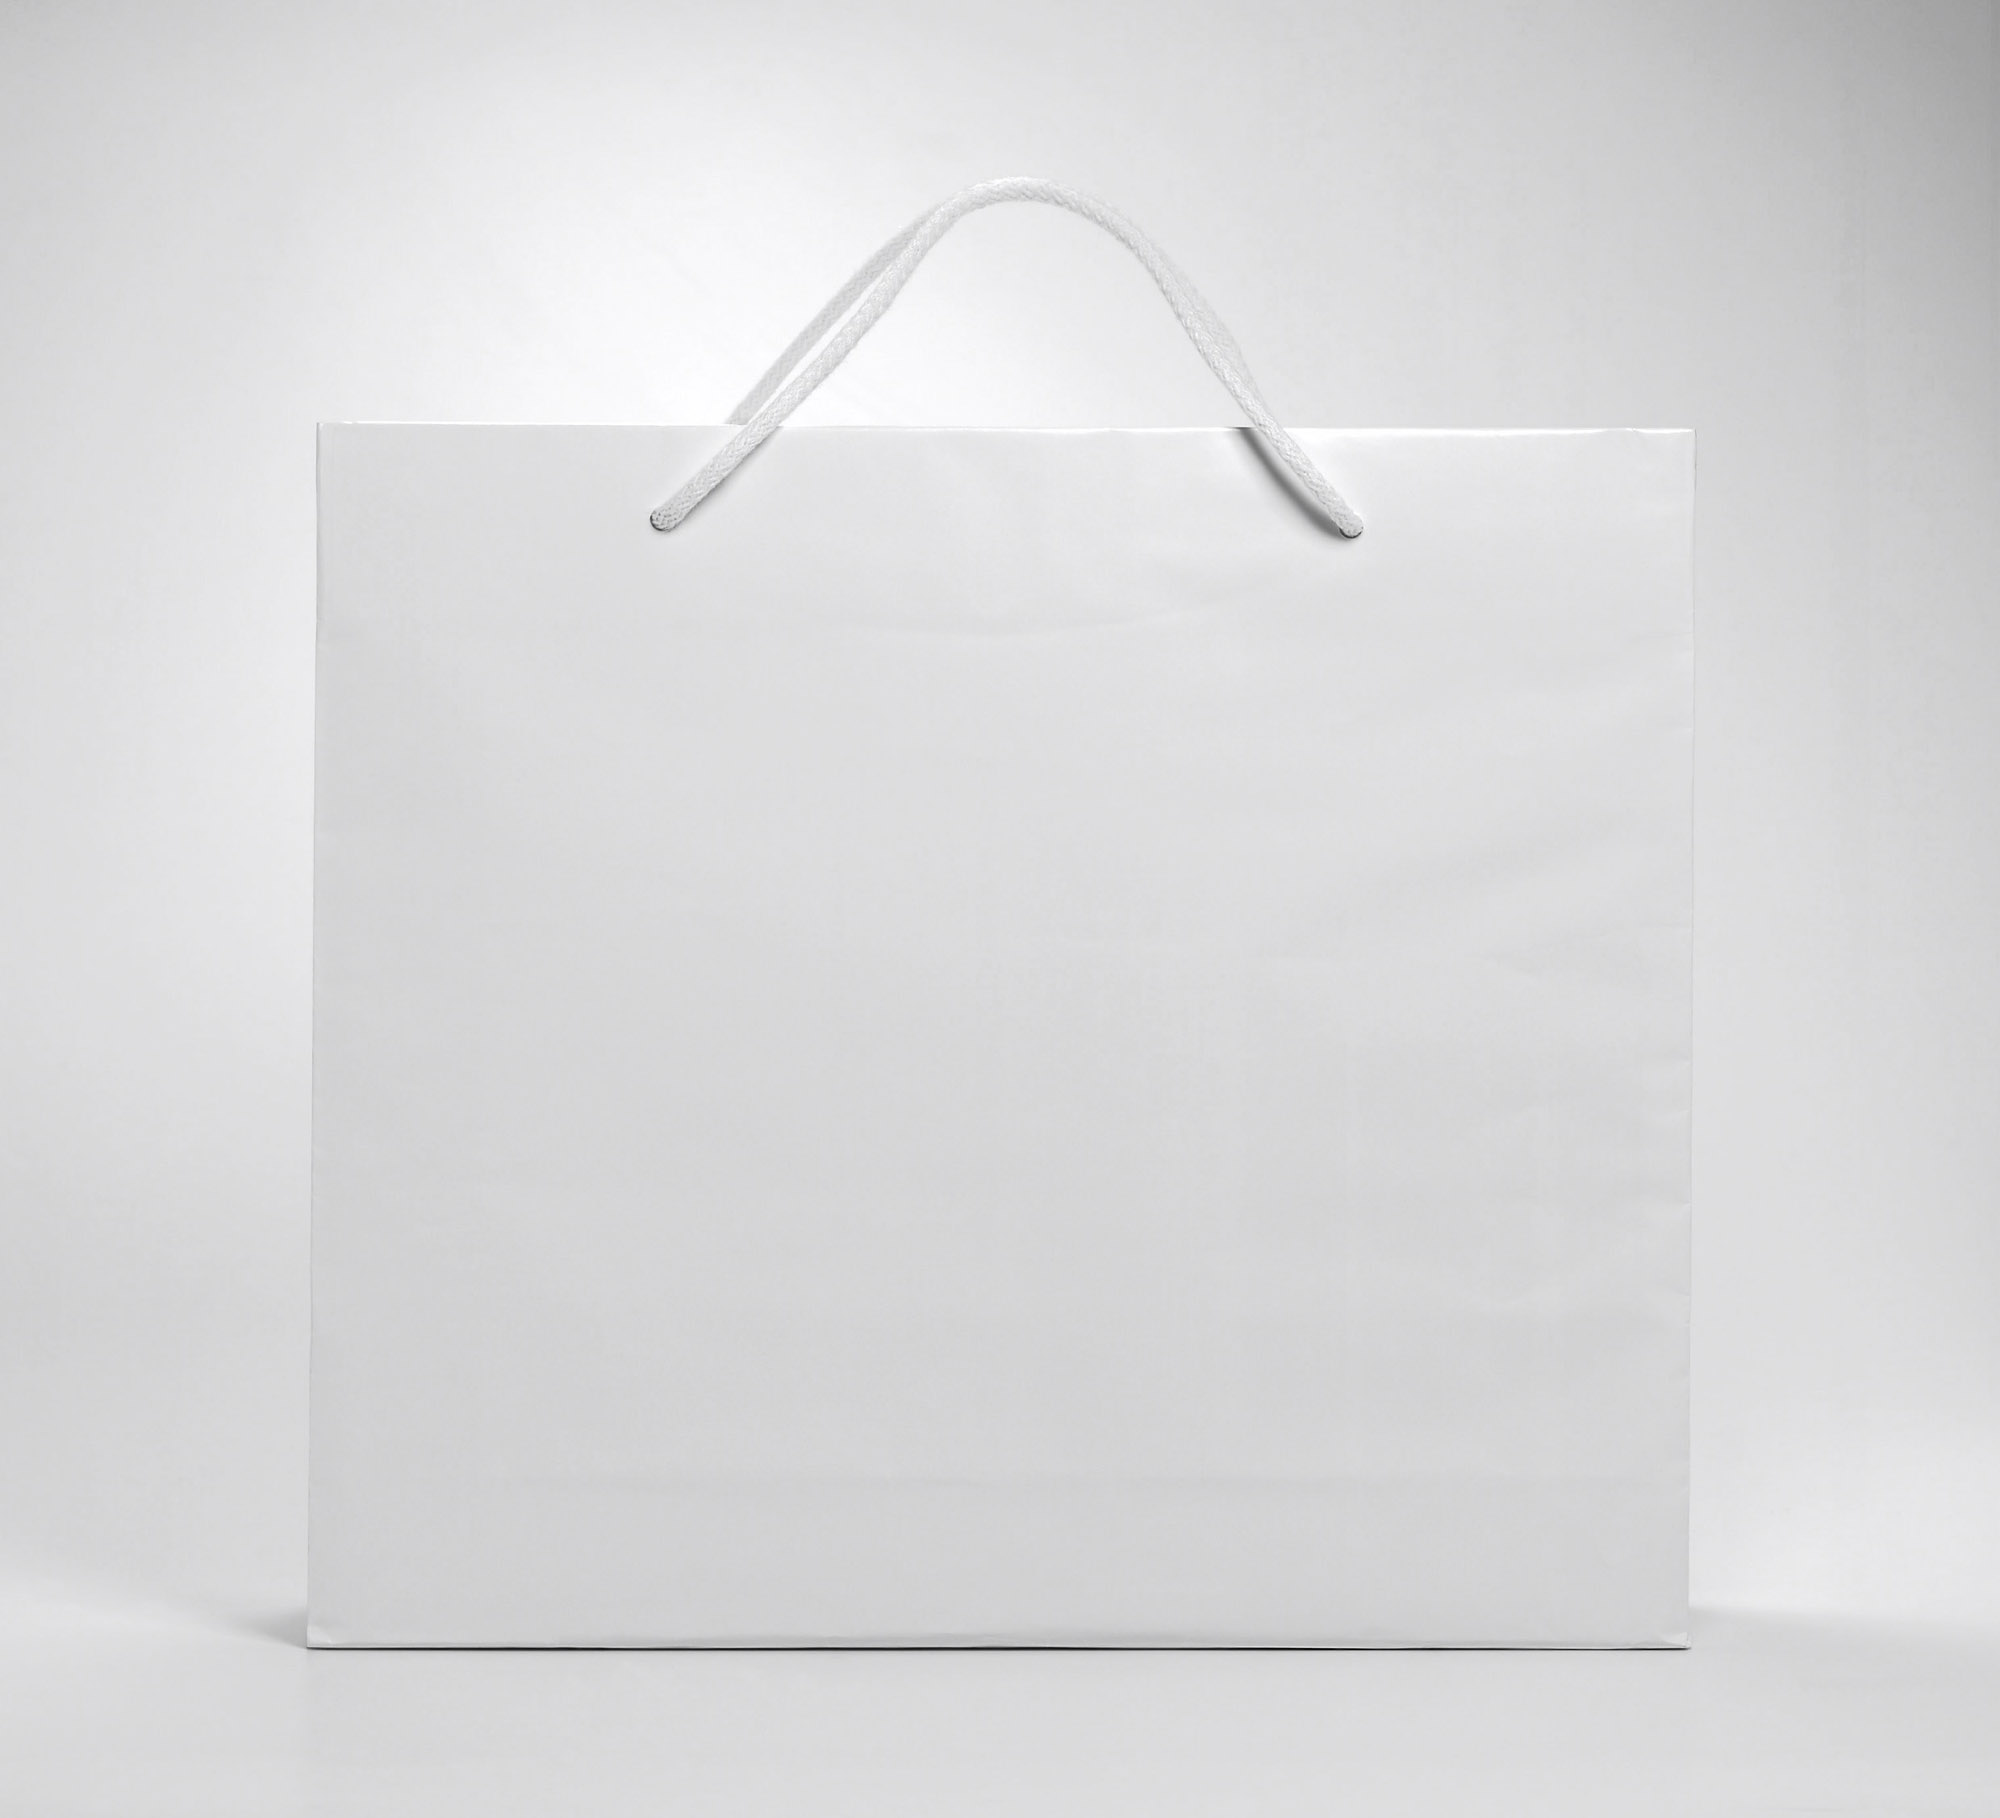 Blank shopping bags 561 - Blank item - Others